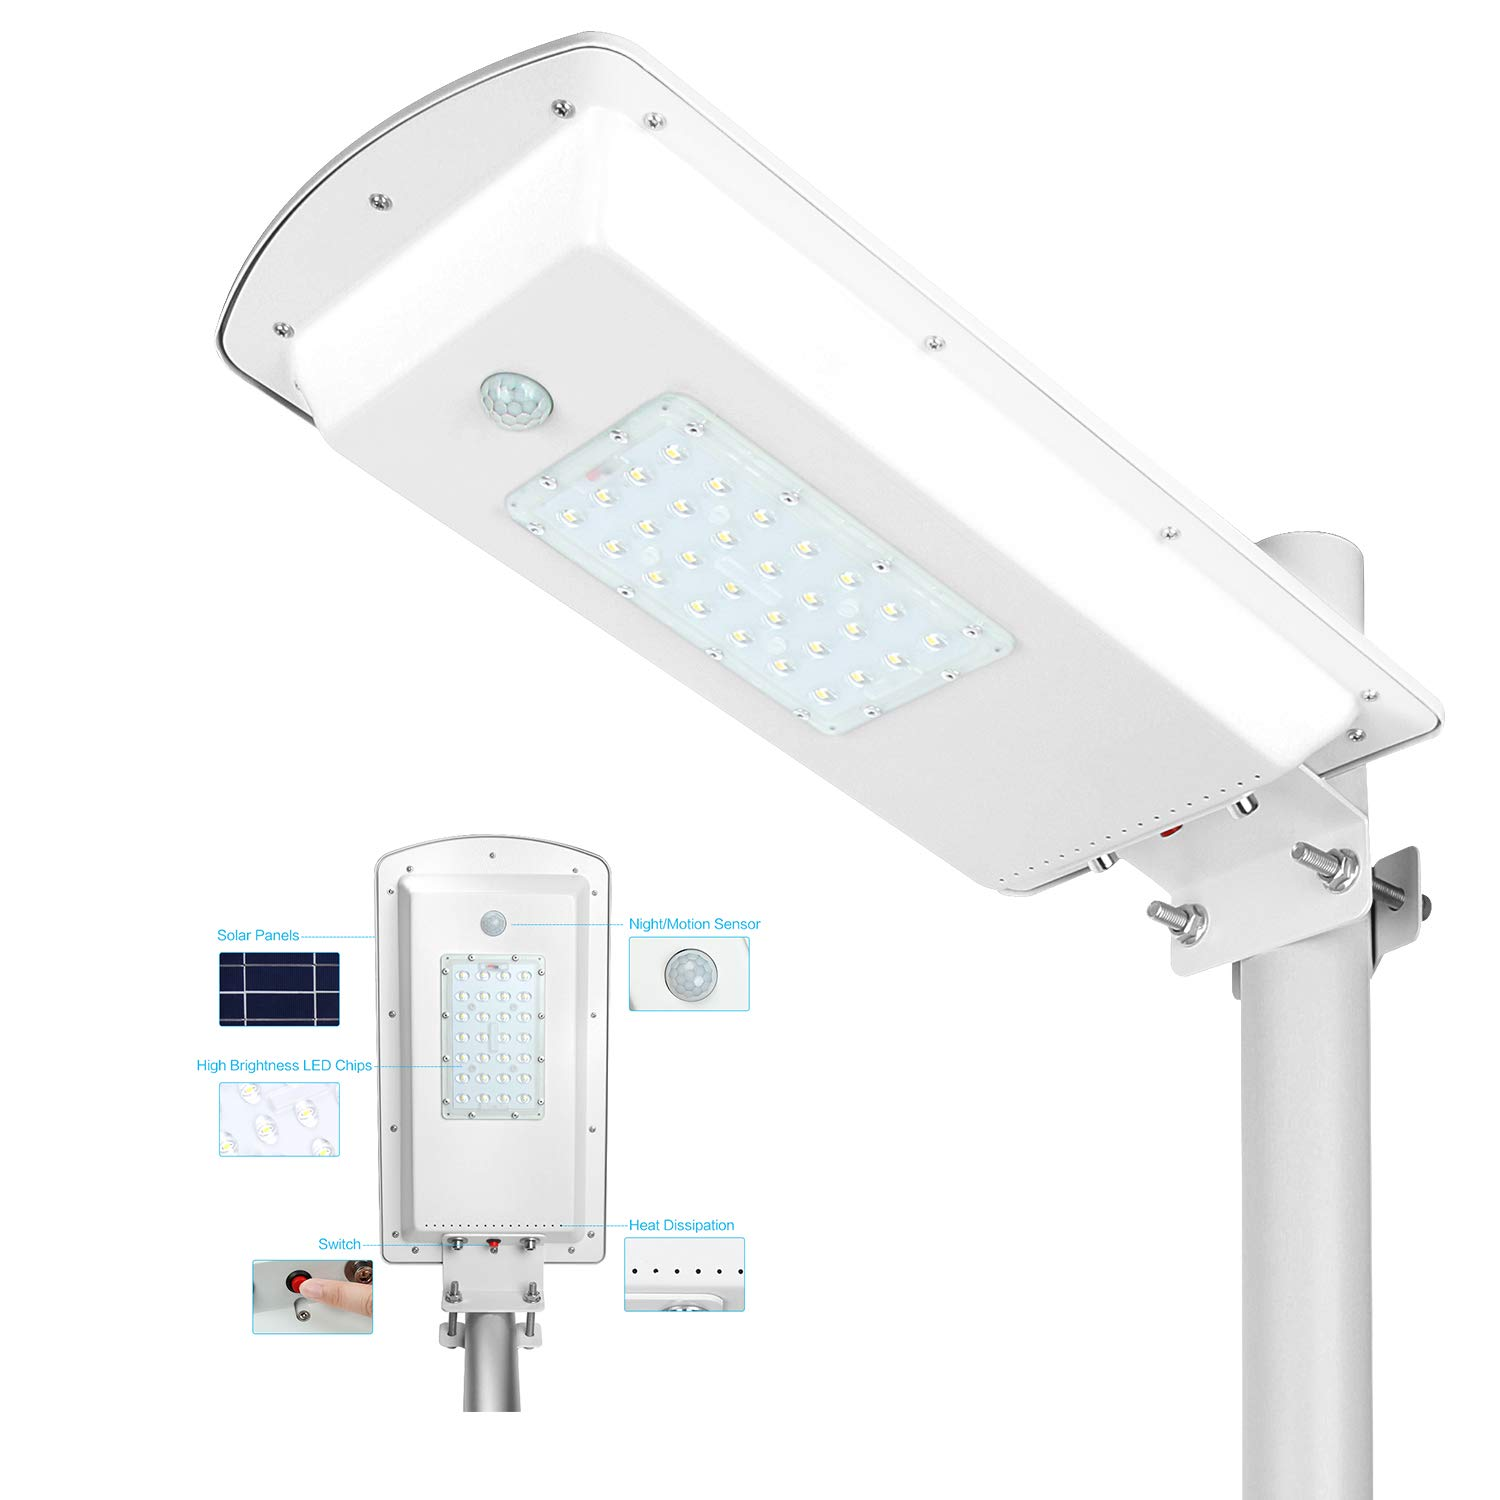 TENKOO Solar Powered Street Light Dusk to Dawn, Lithium Battery -Wireless-Waterproof IP65-Light/Motion Sensor Commercial or Industrial Grade Security Street Lights Perfect for Outdoor Lighting Area